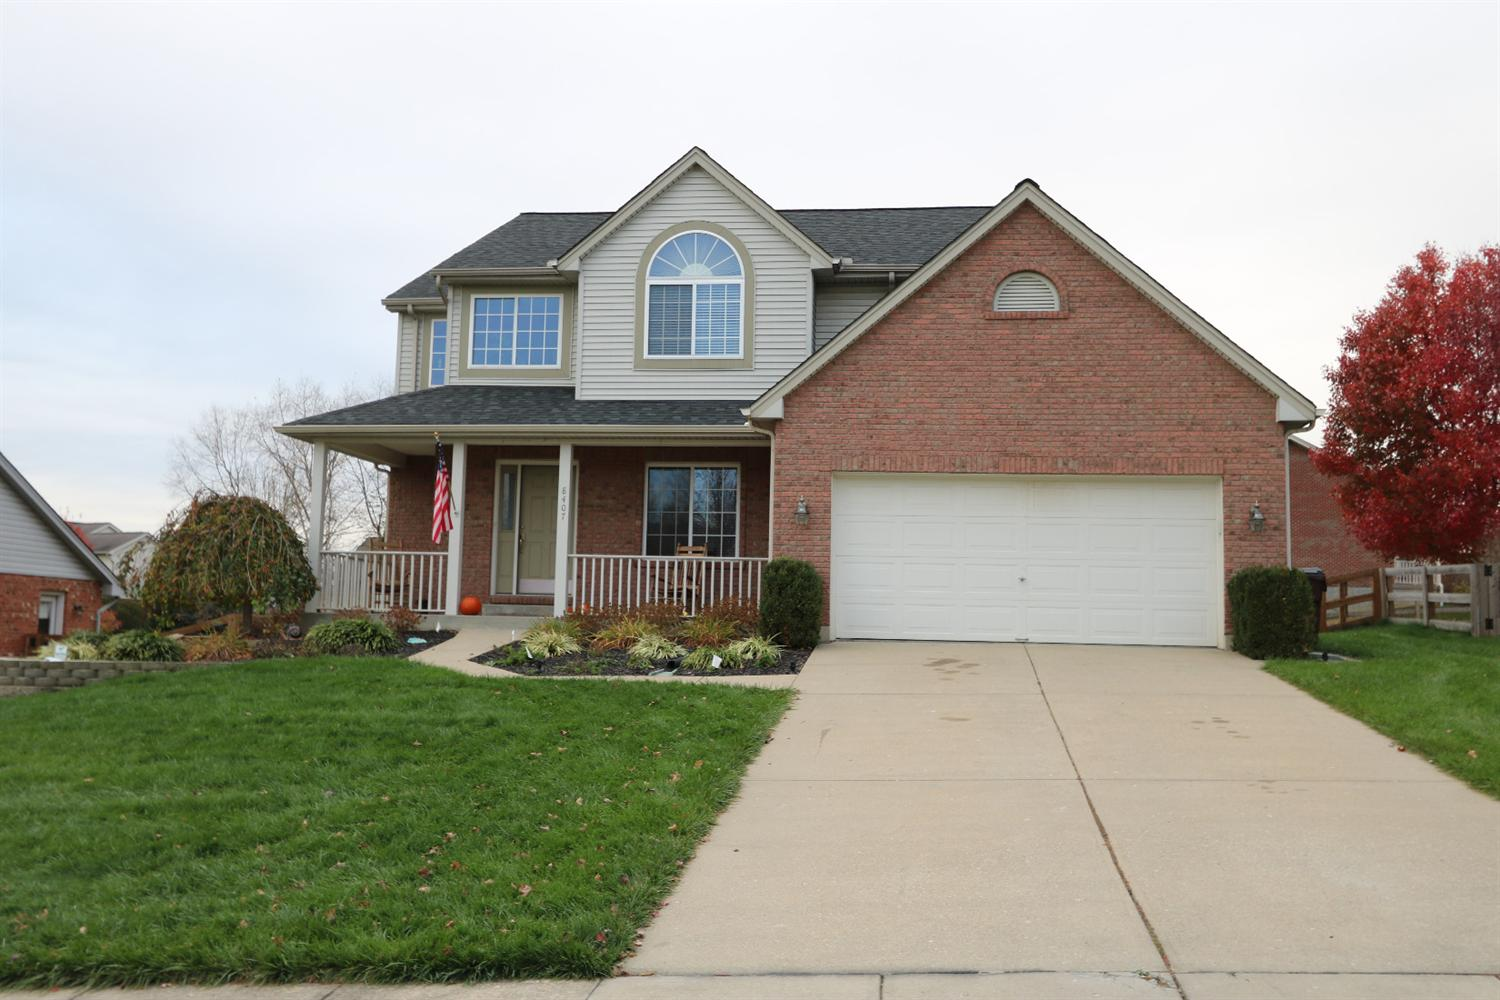 Photo 1 for 8407 Stratford Ct Florence, KY 41042